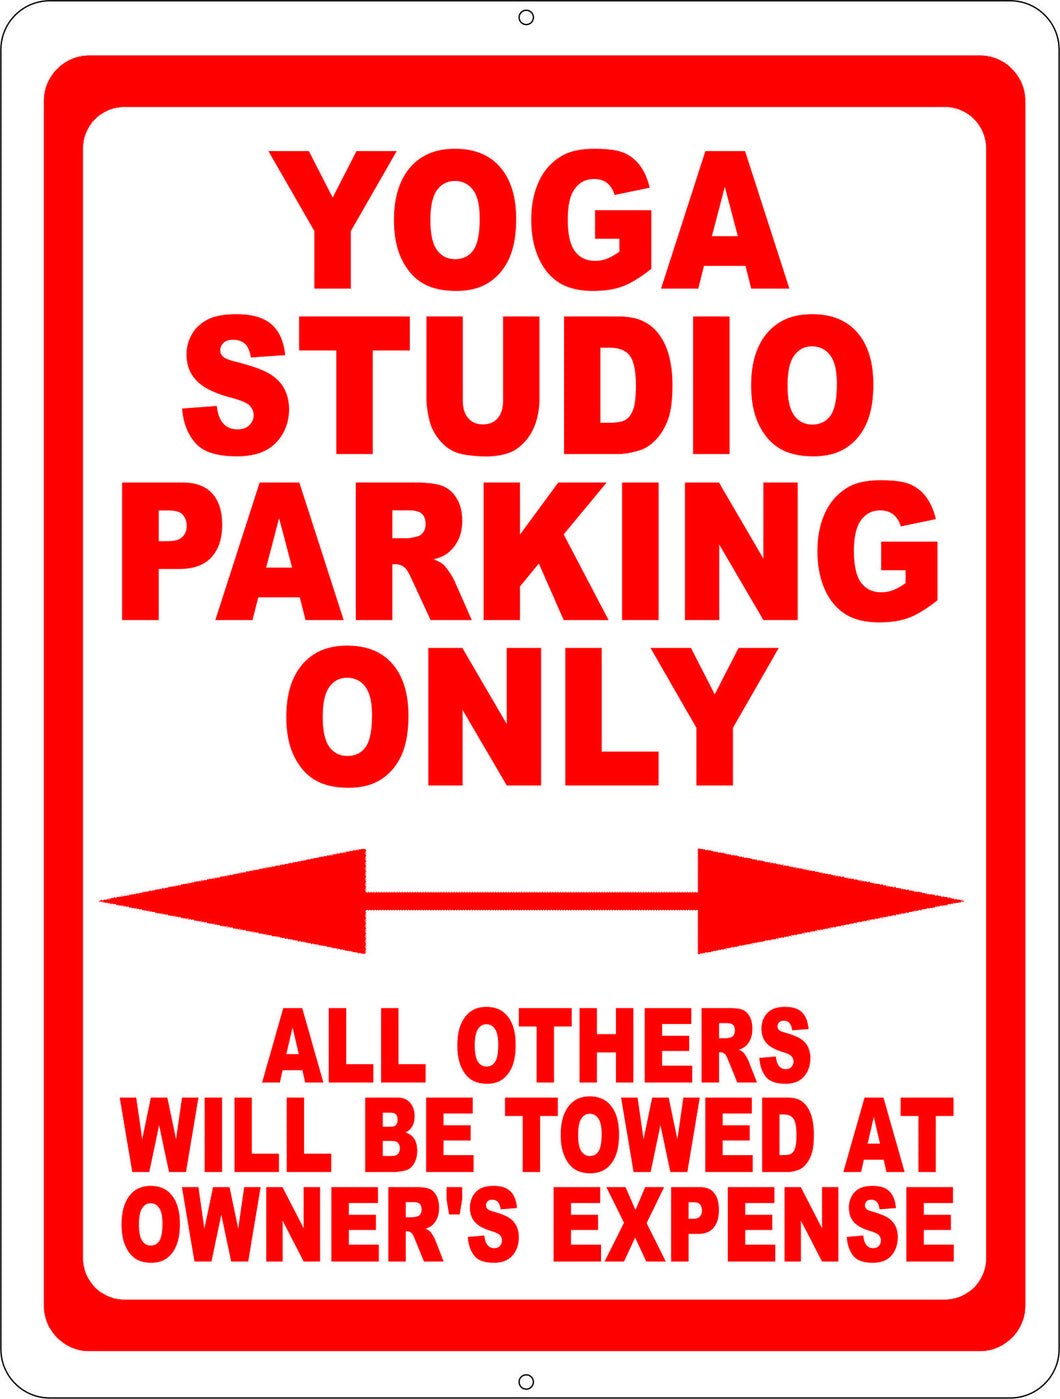 Yoga Studio Parking Only All Others Towed Sign - Signs & Decals by SalaGraphics